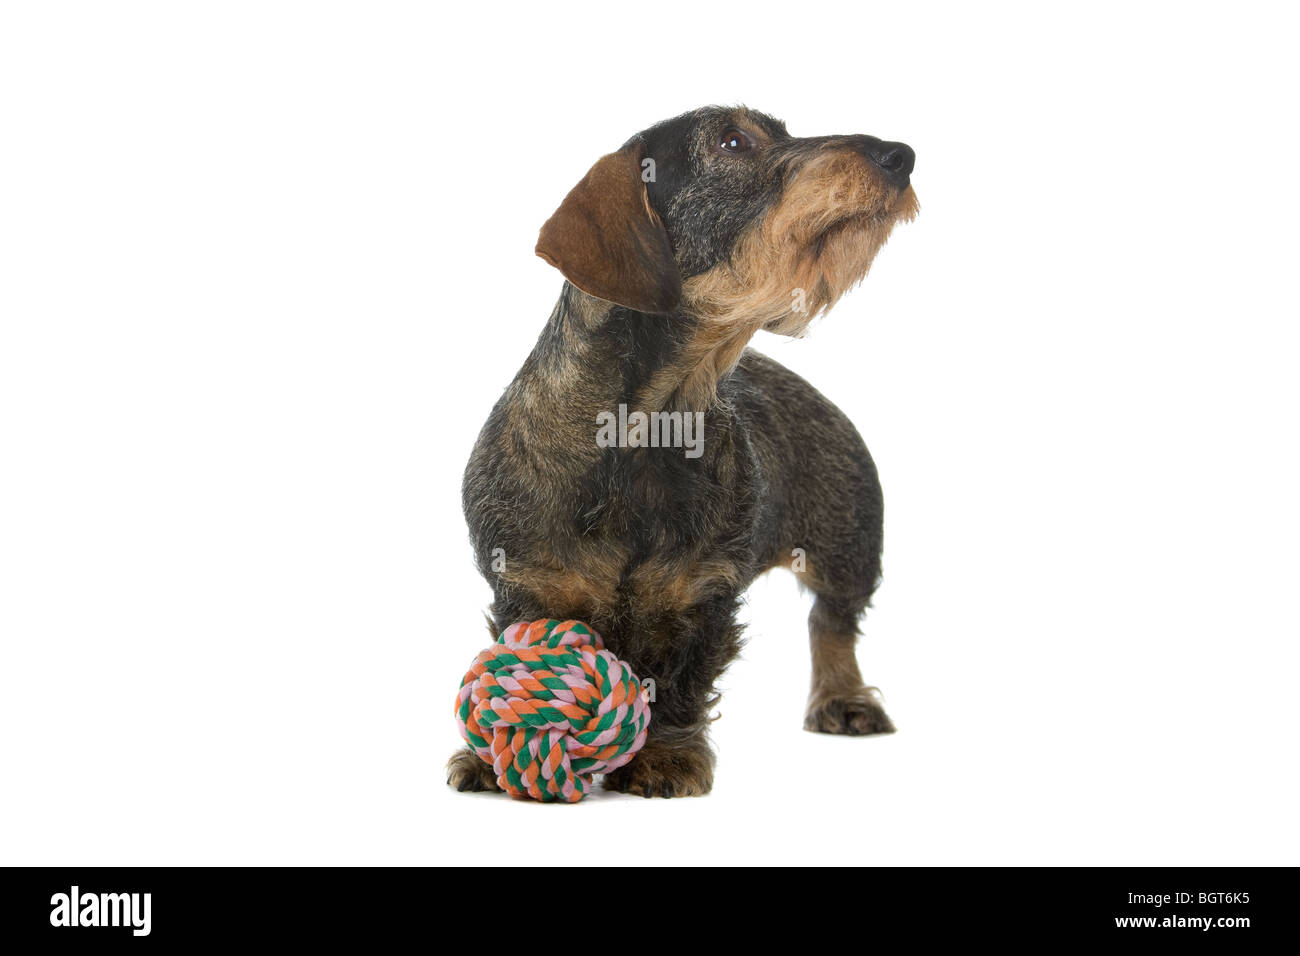 Wire Haired Dachshund Canis Lupus Familiaris Stock Photos & Wire ...